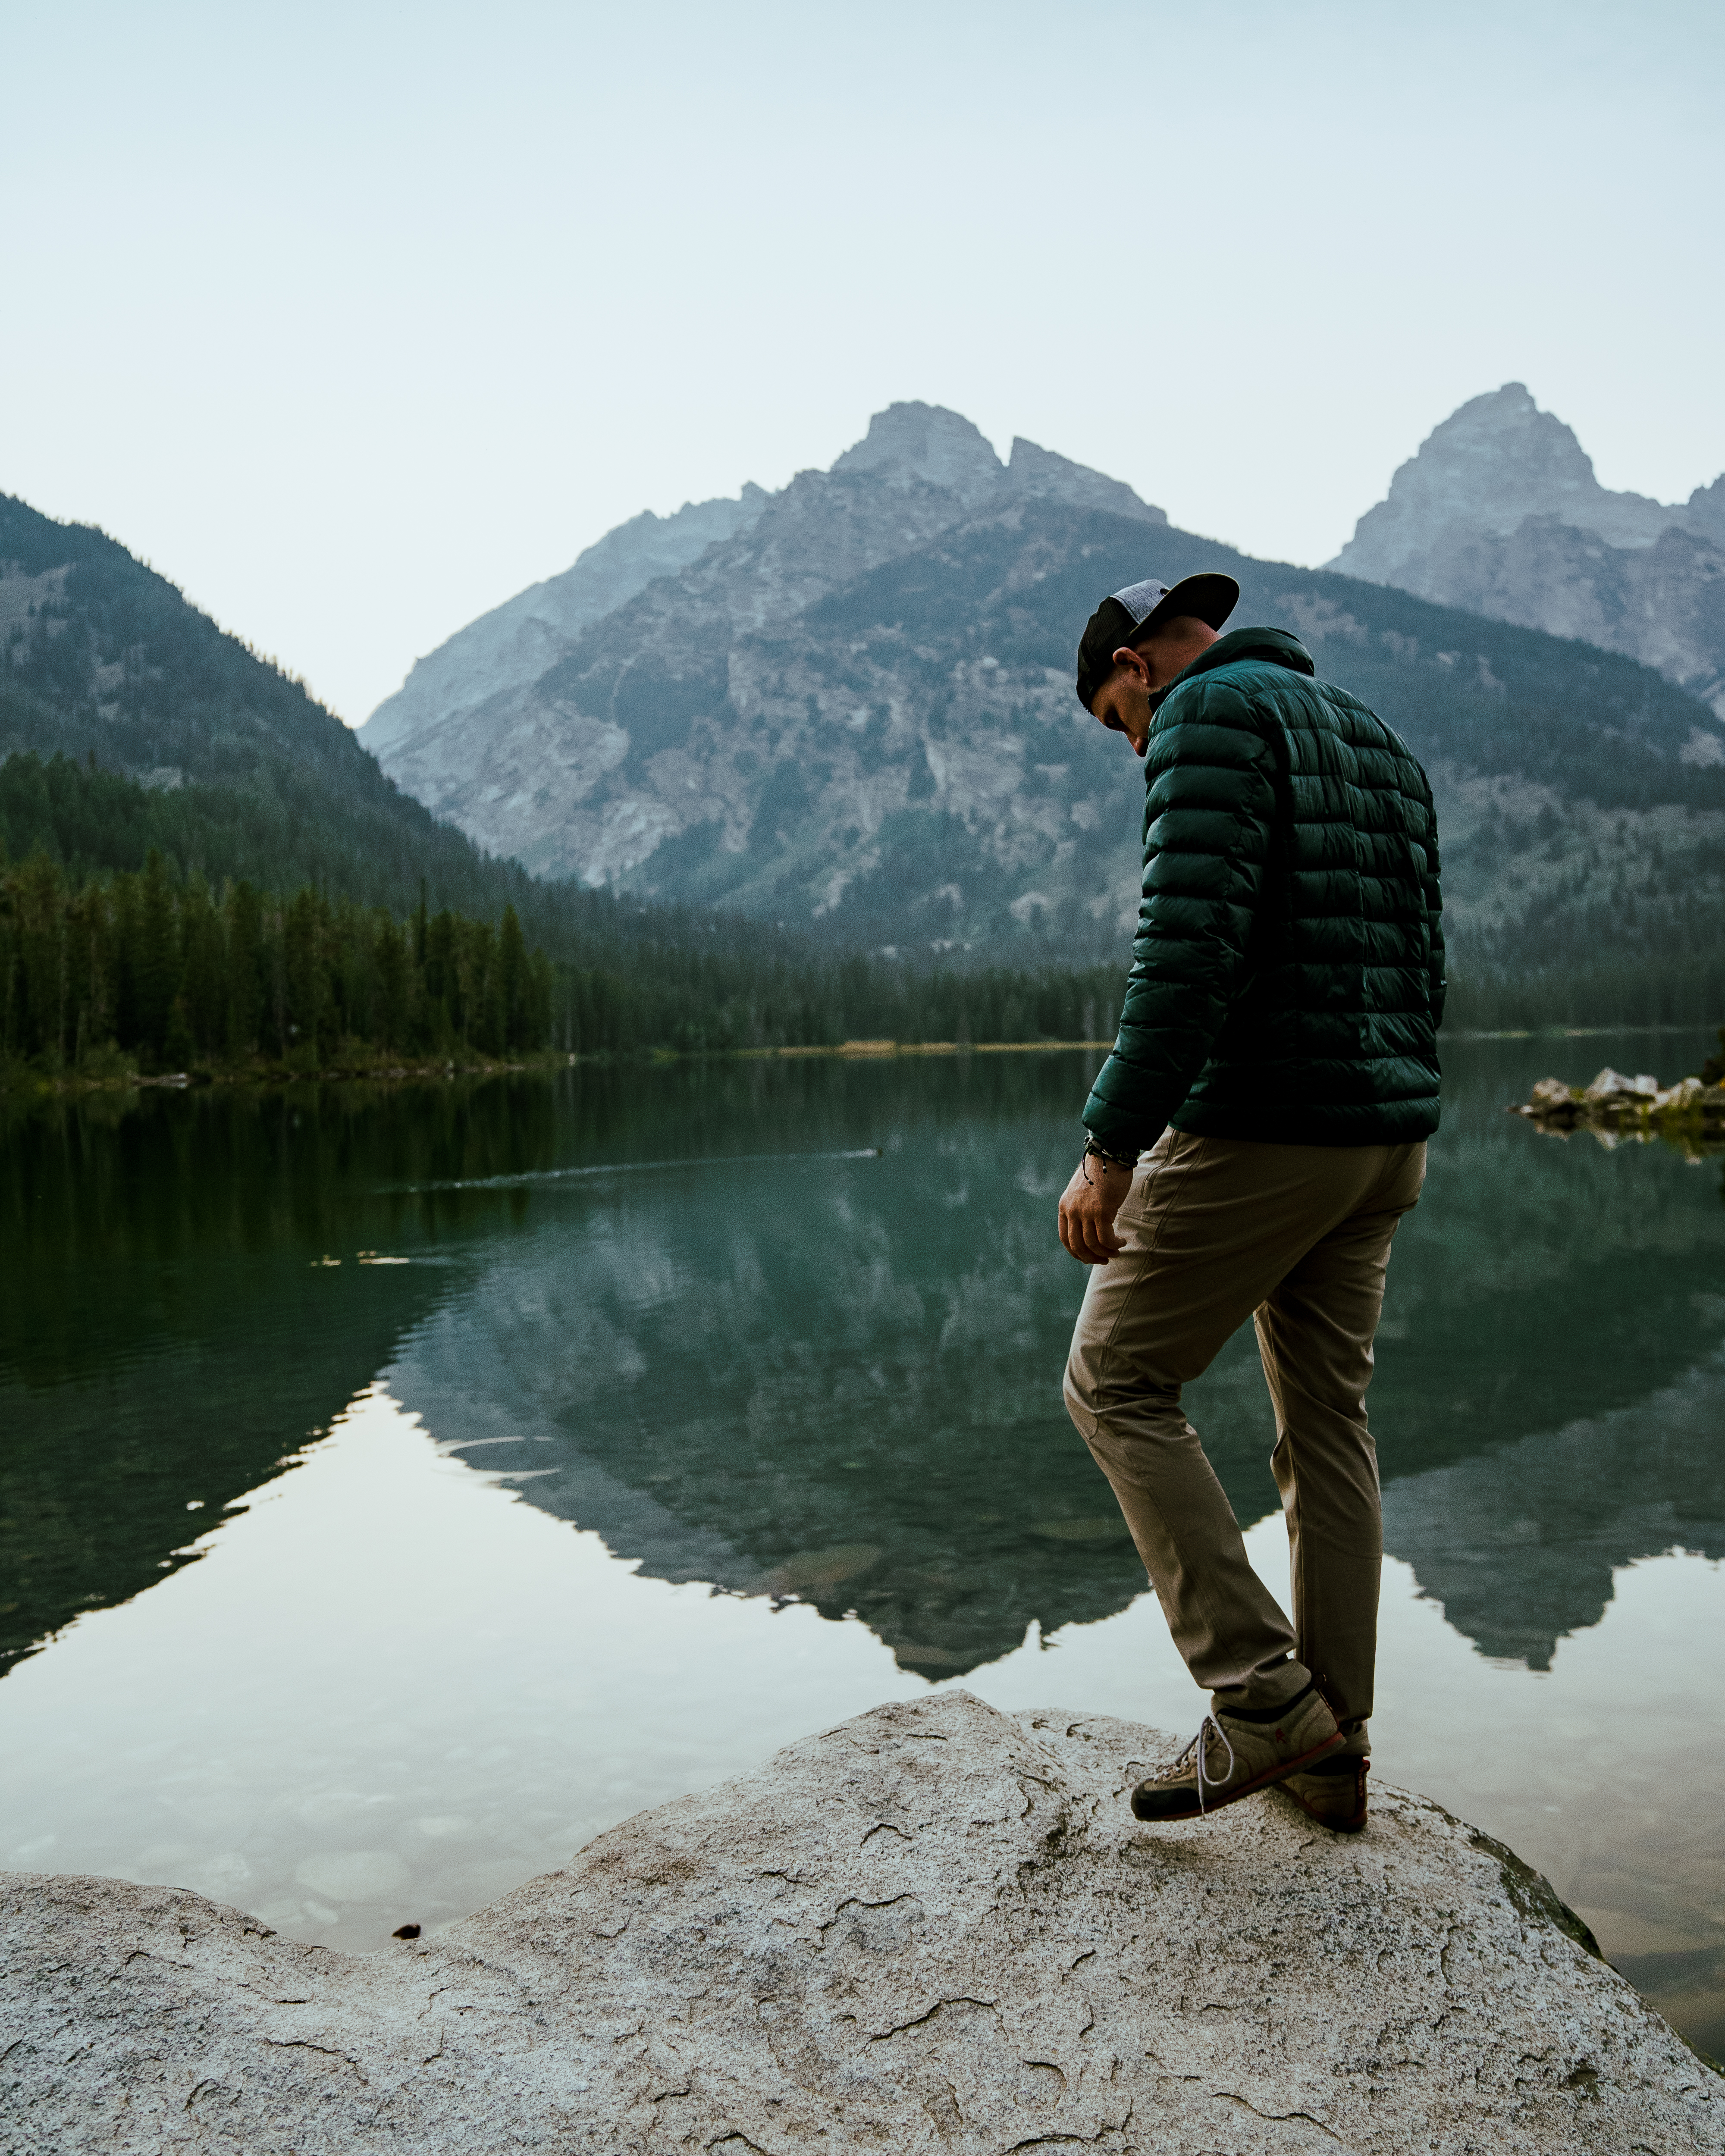 Hiker in front of Taggart lake, Teton National Park